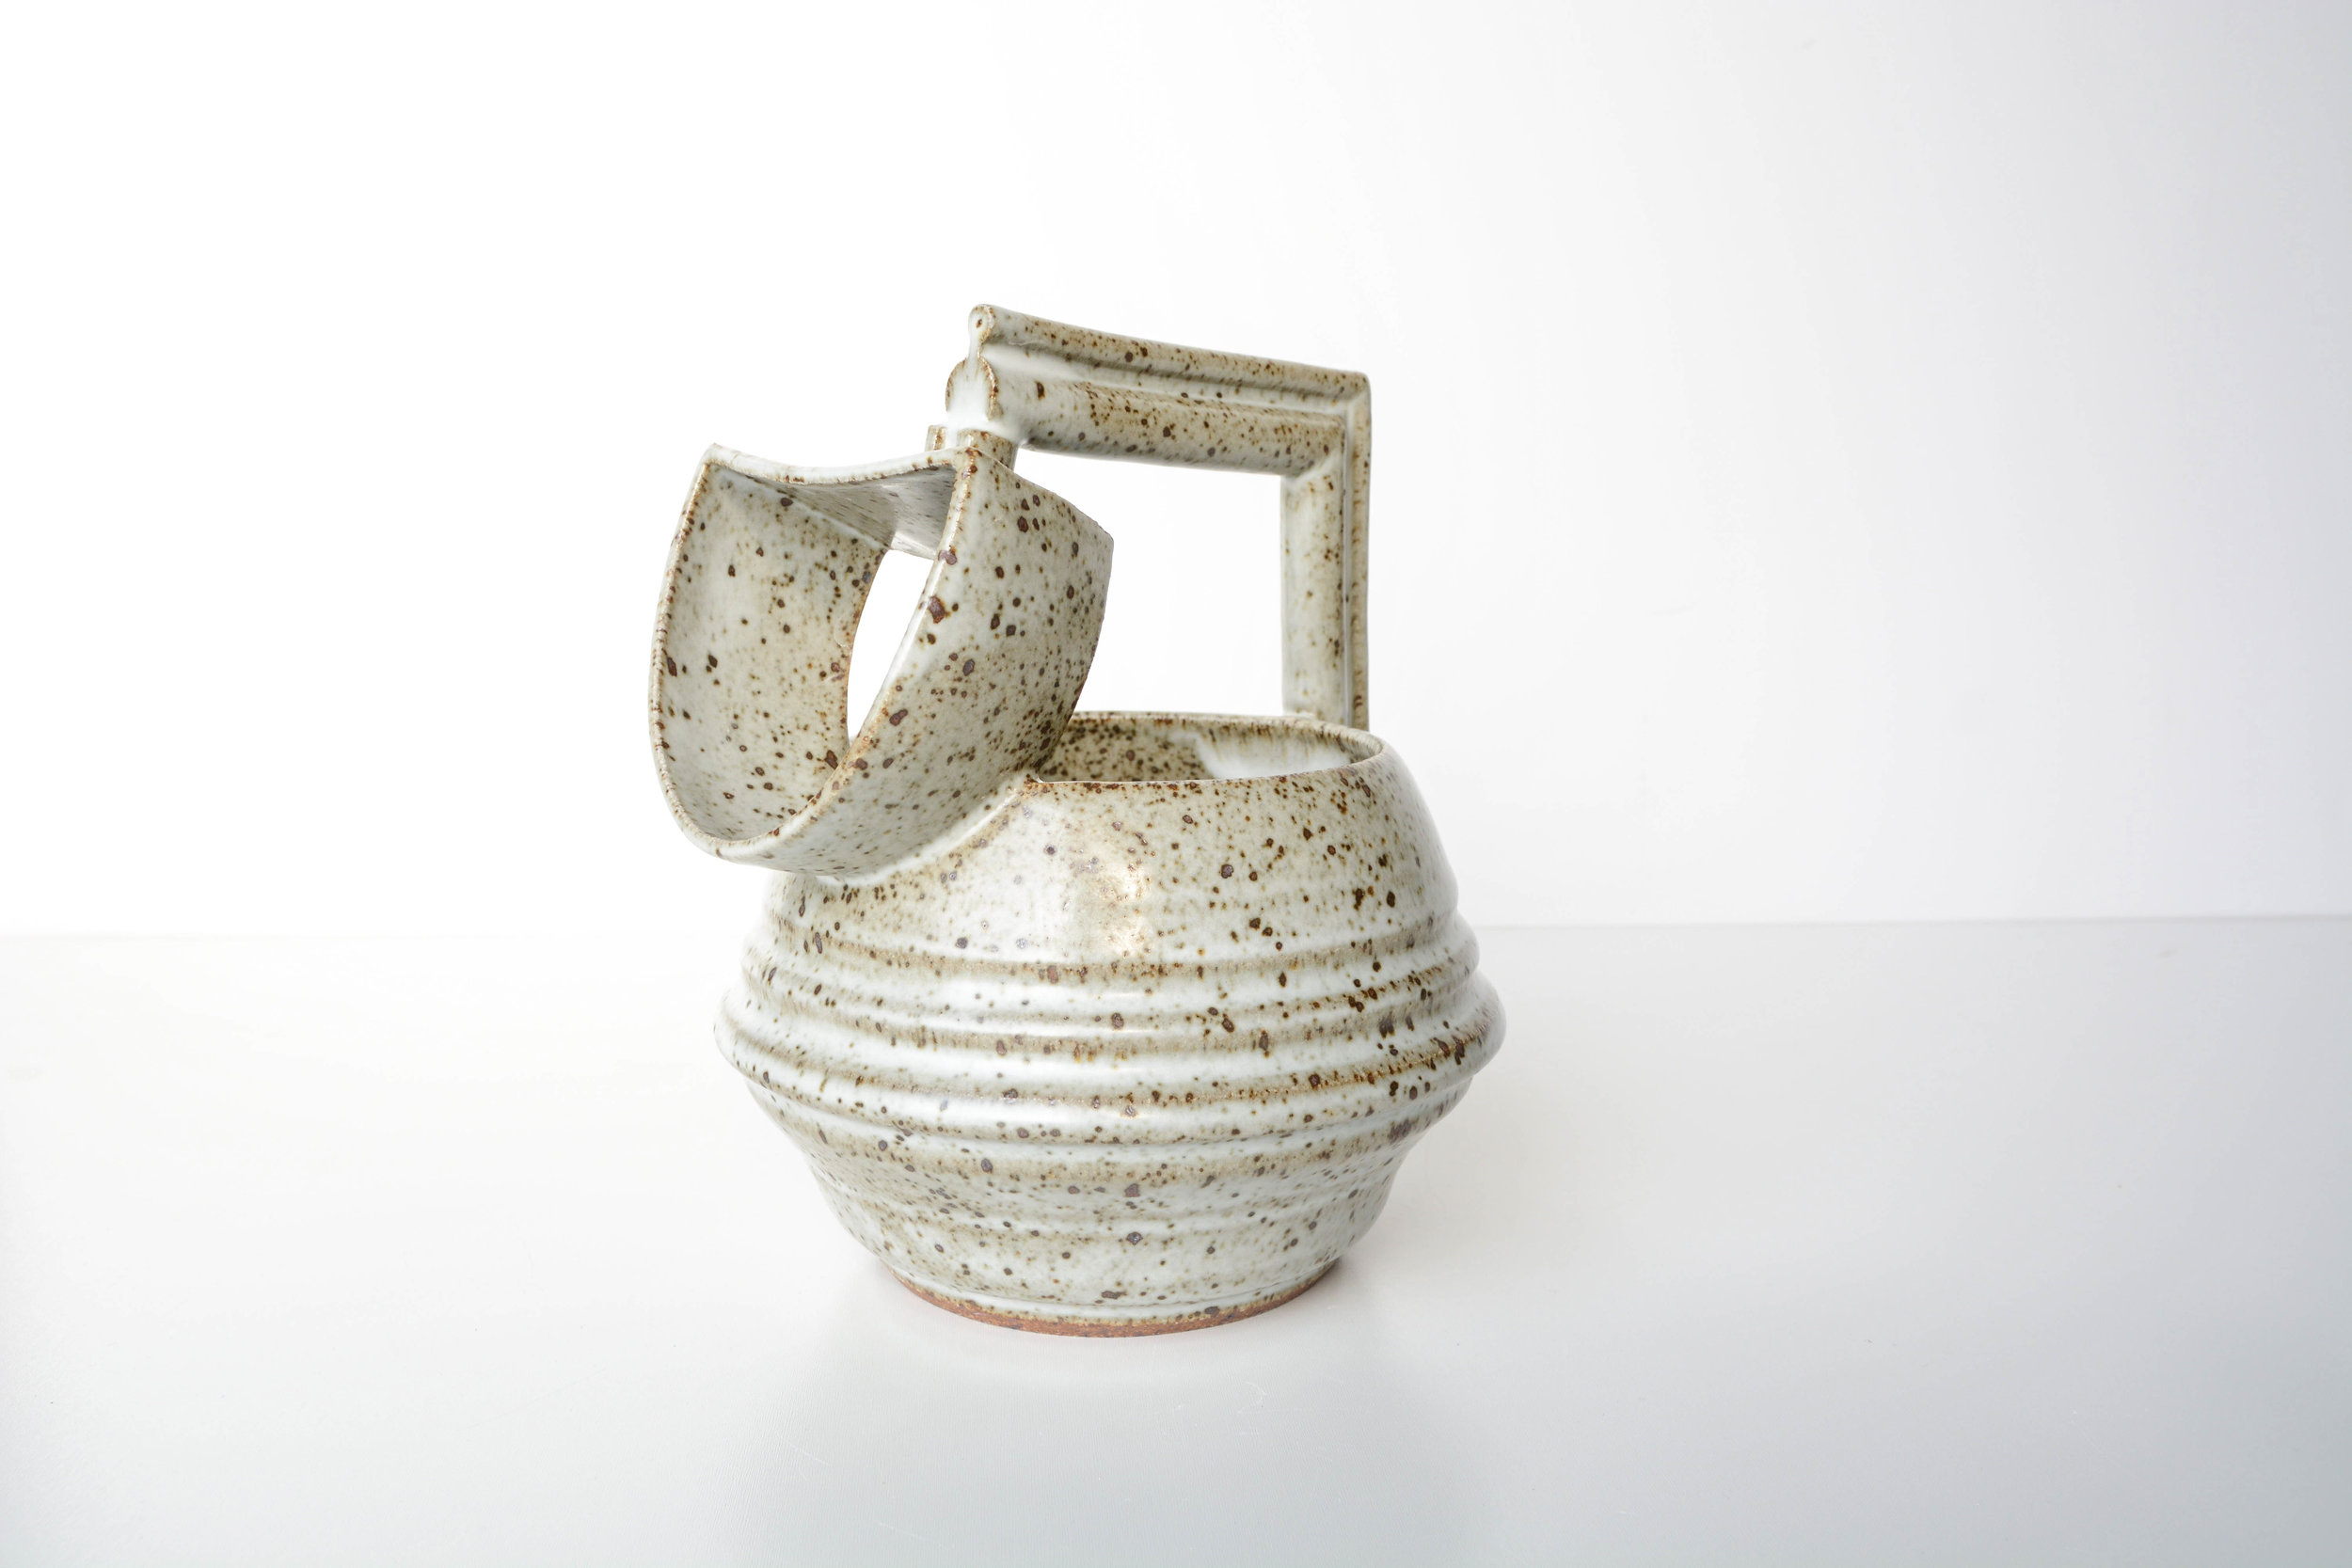 koikceramics2017 (37 of 42).jpg